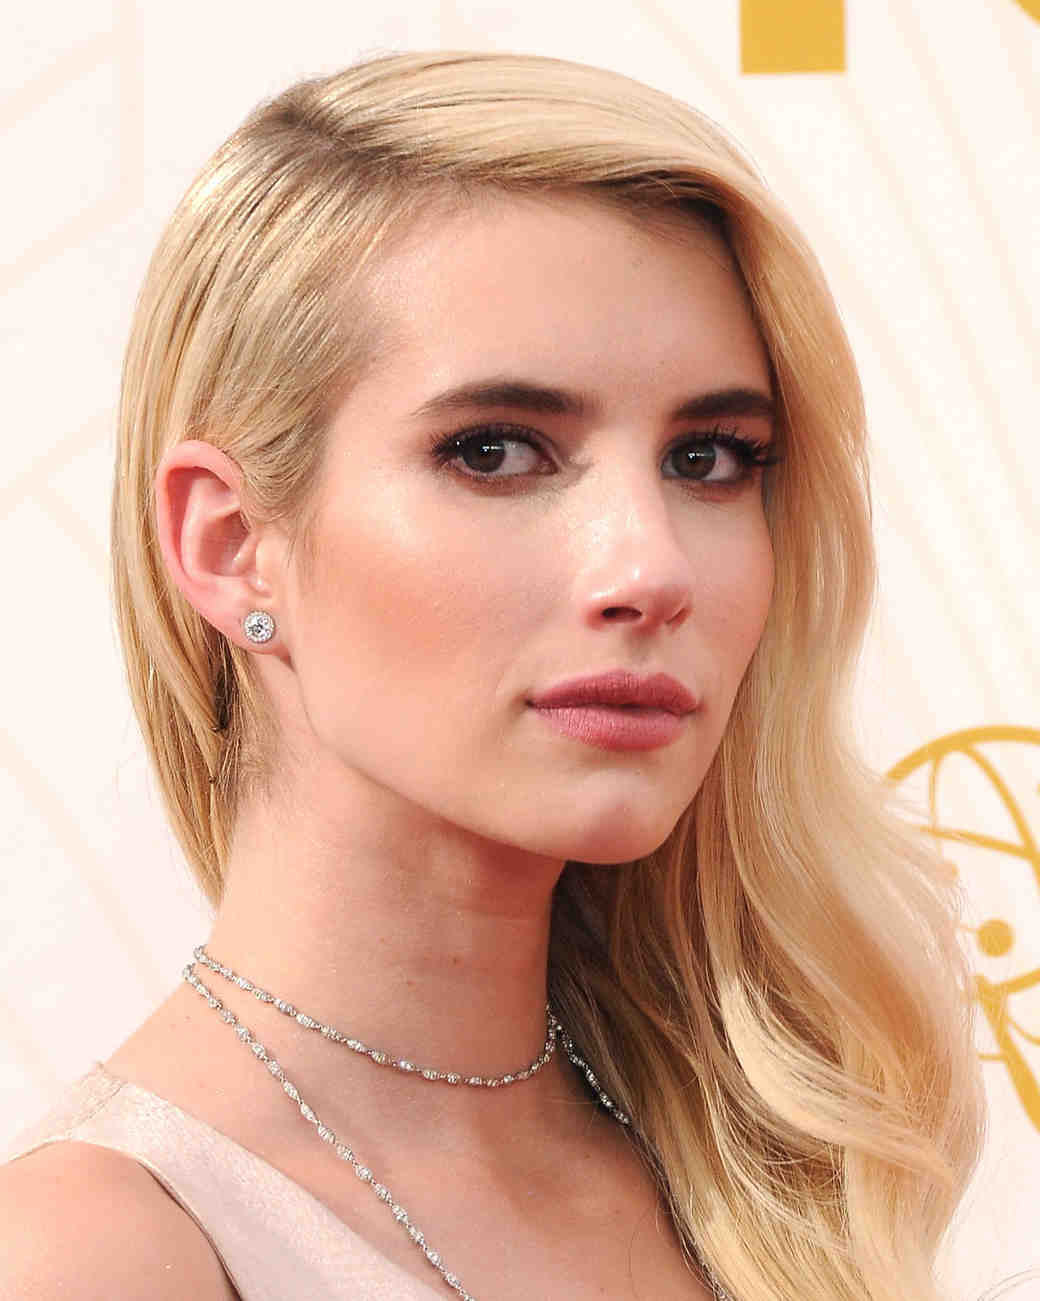 celebrity-wedding-makeup-emma-roberts-gettyimages-489407932-0915.jpg